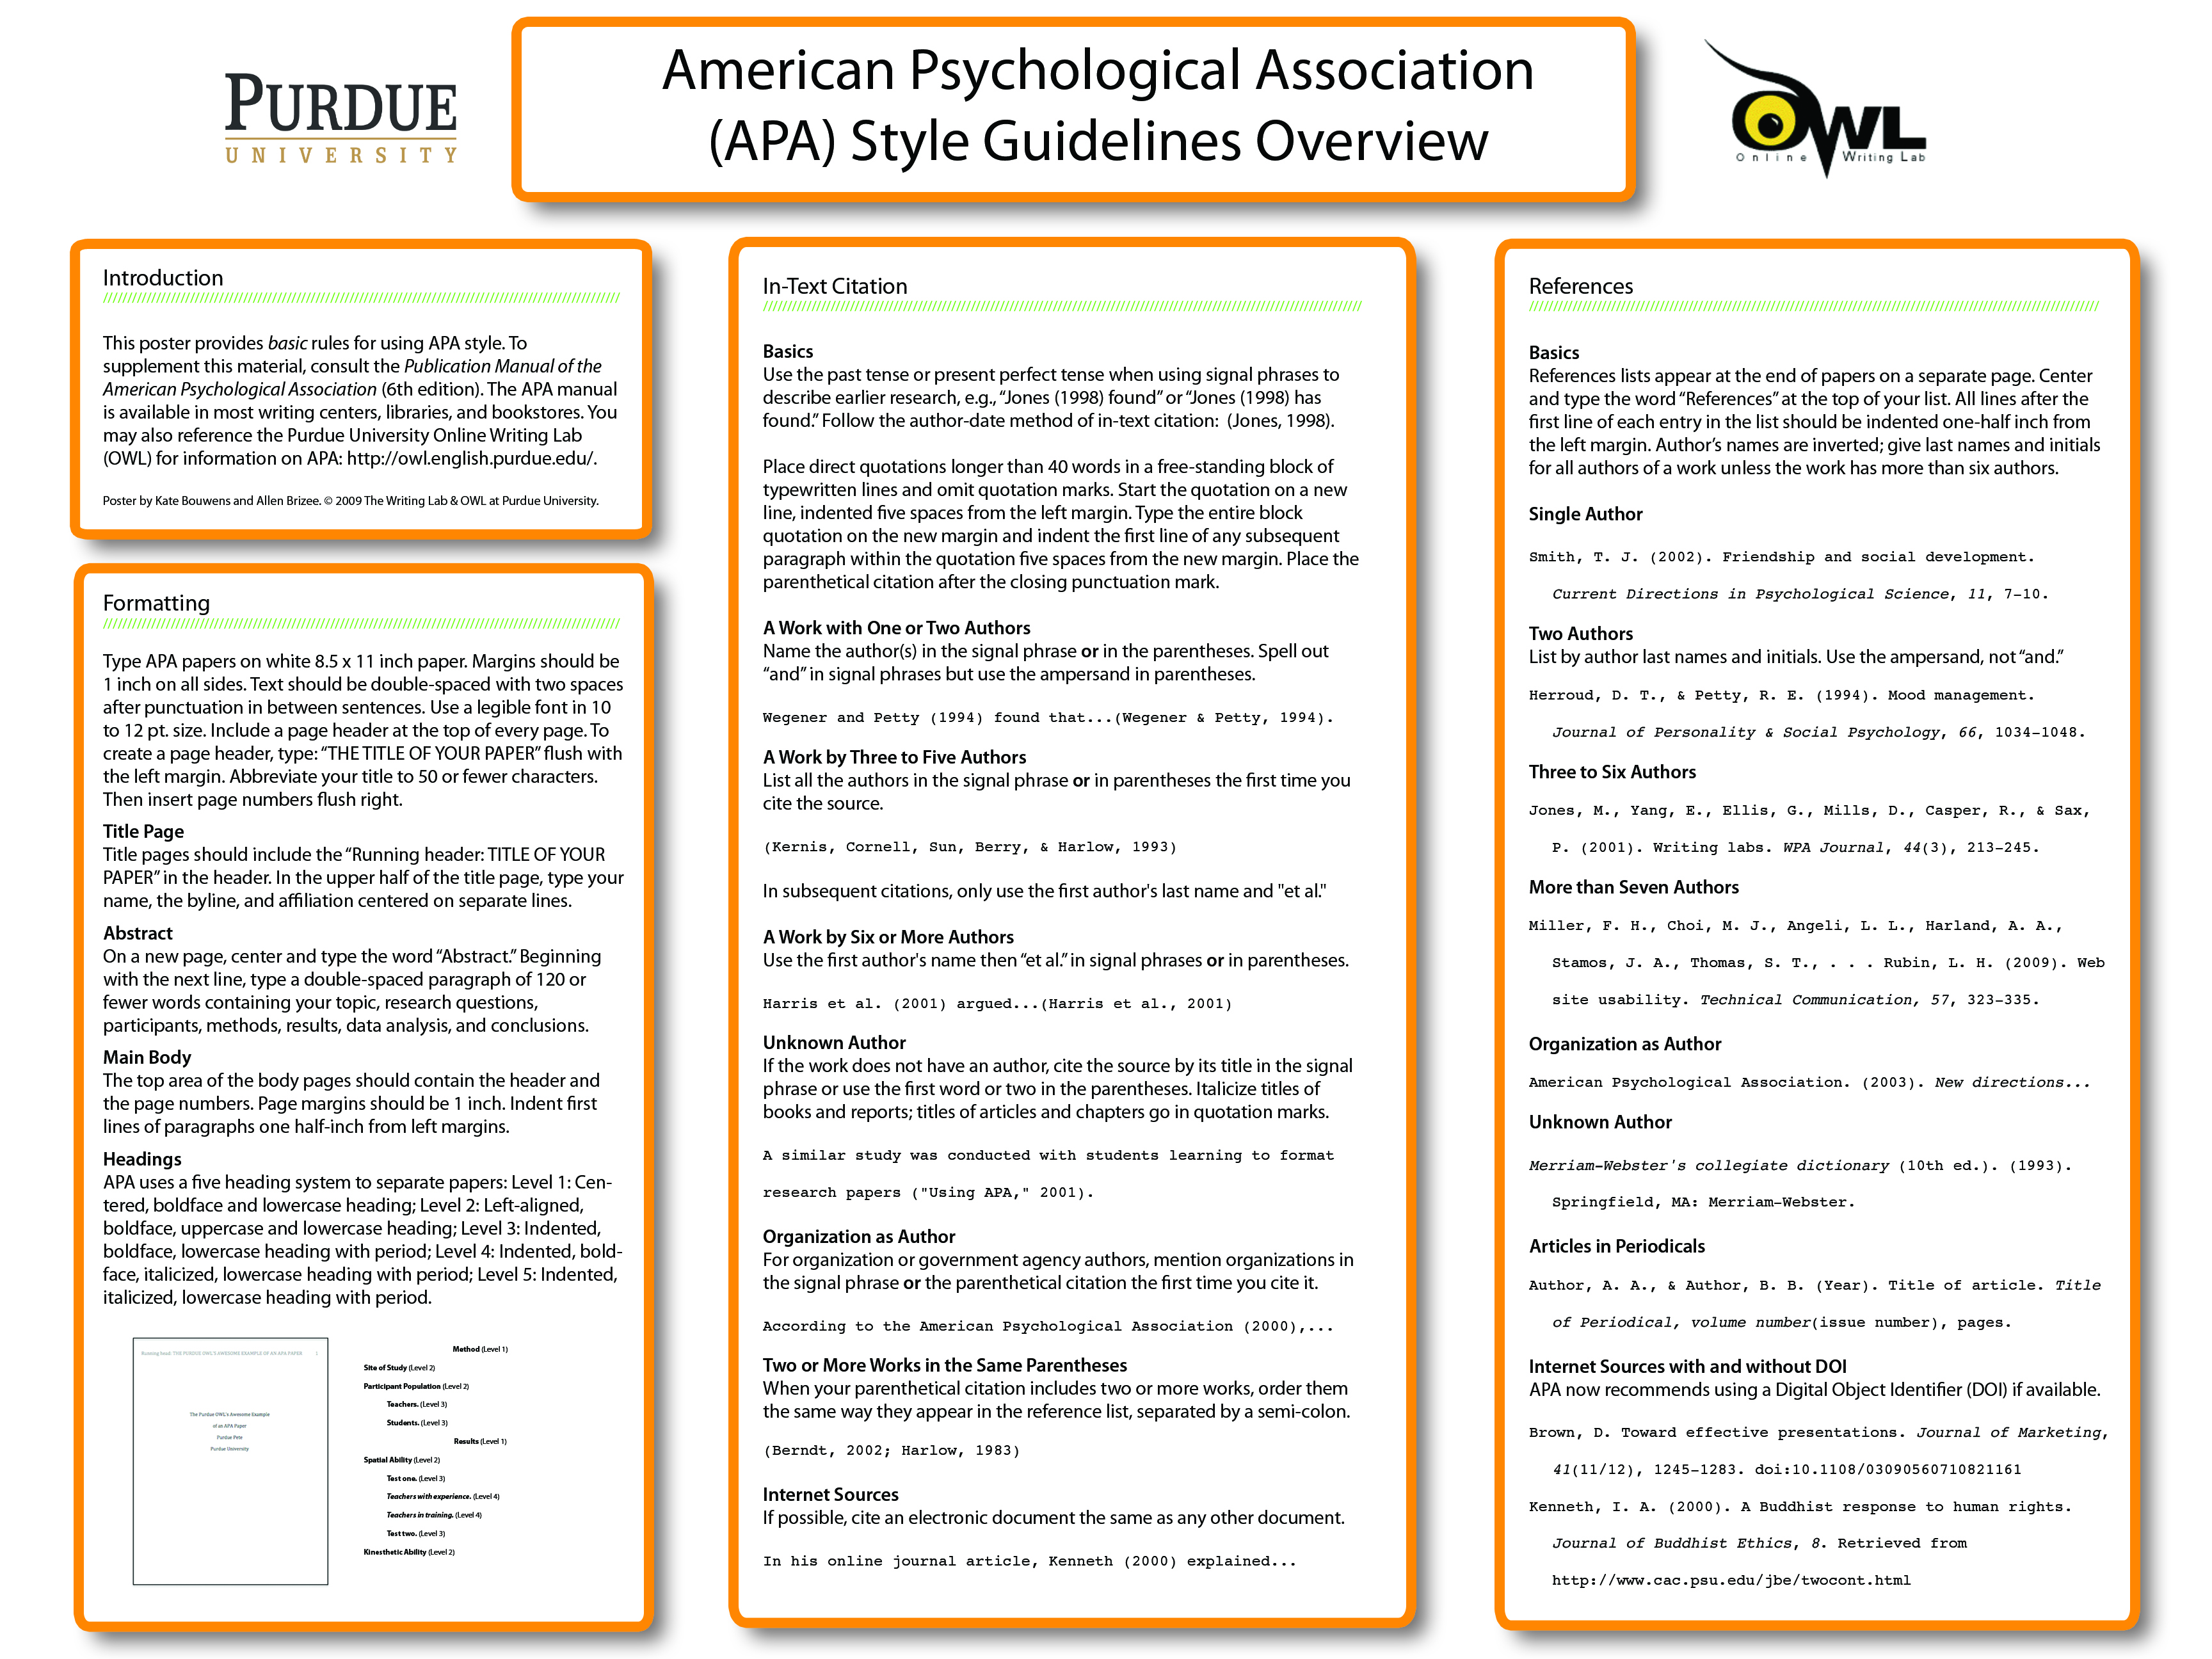 020 Research Paper Apaposter09 Apa Format Reference Unique Page List Full